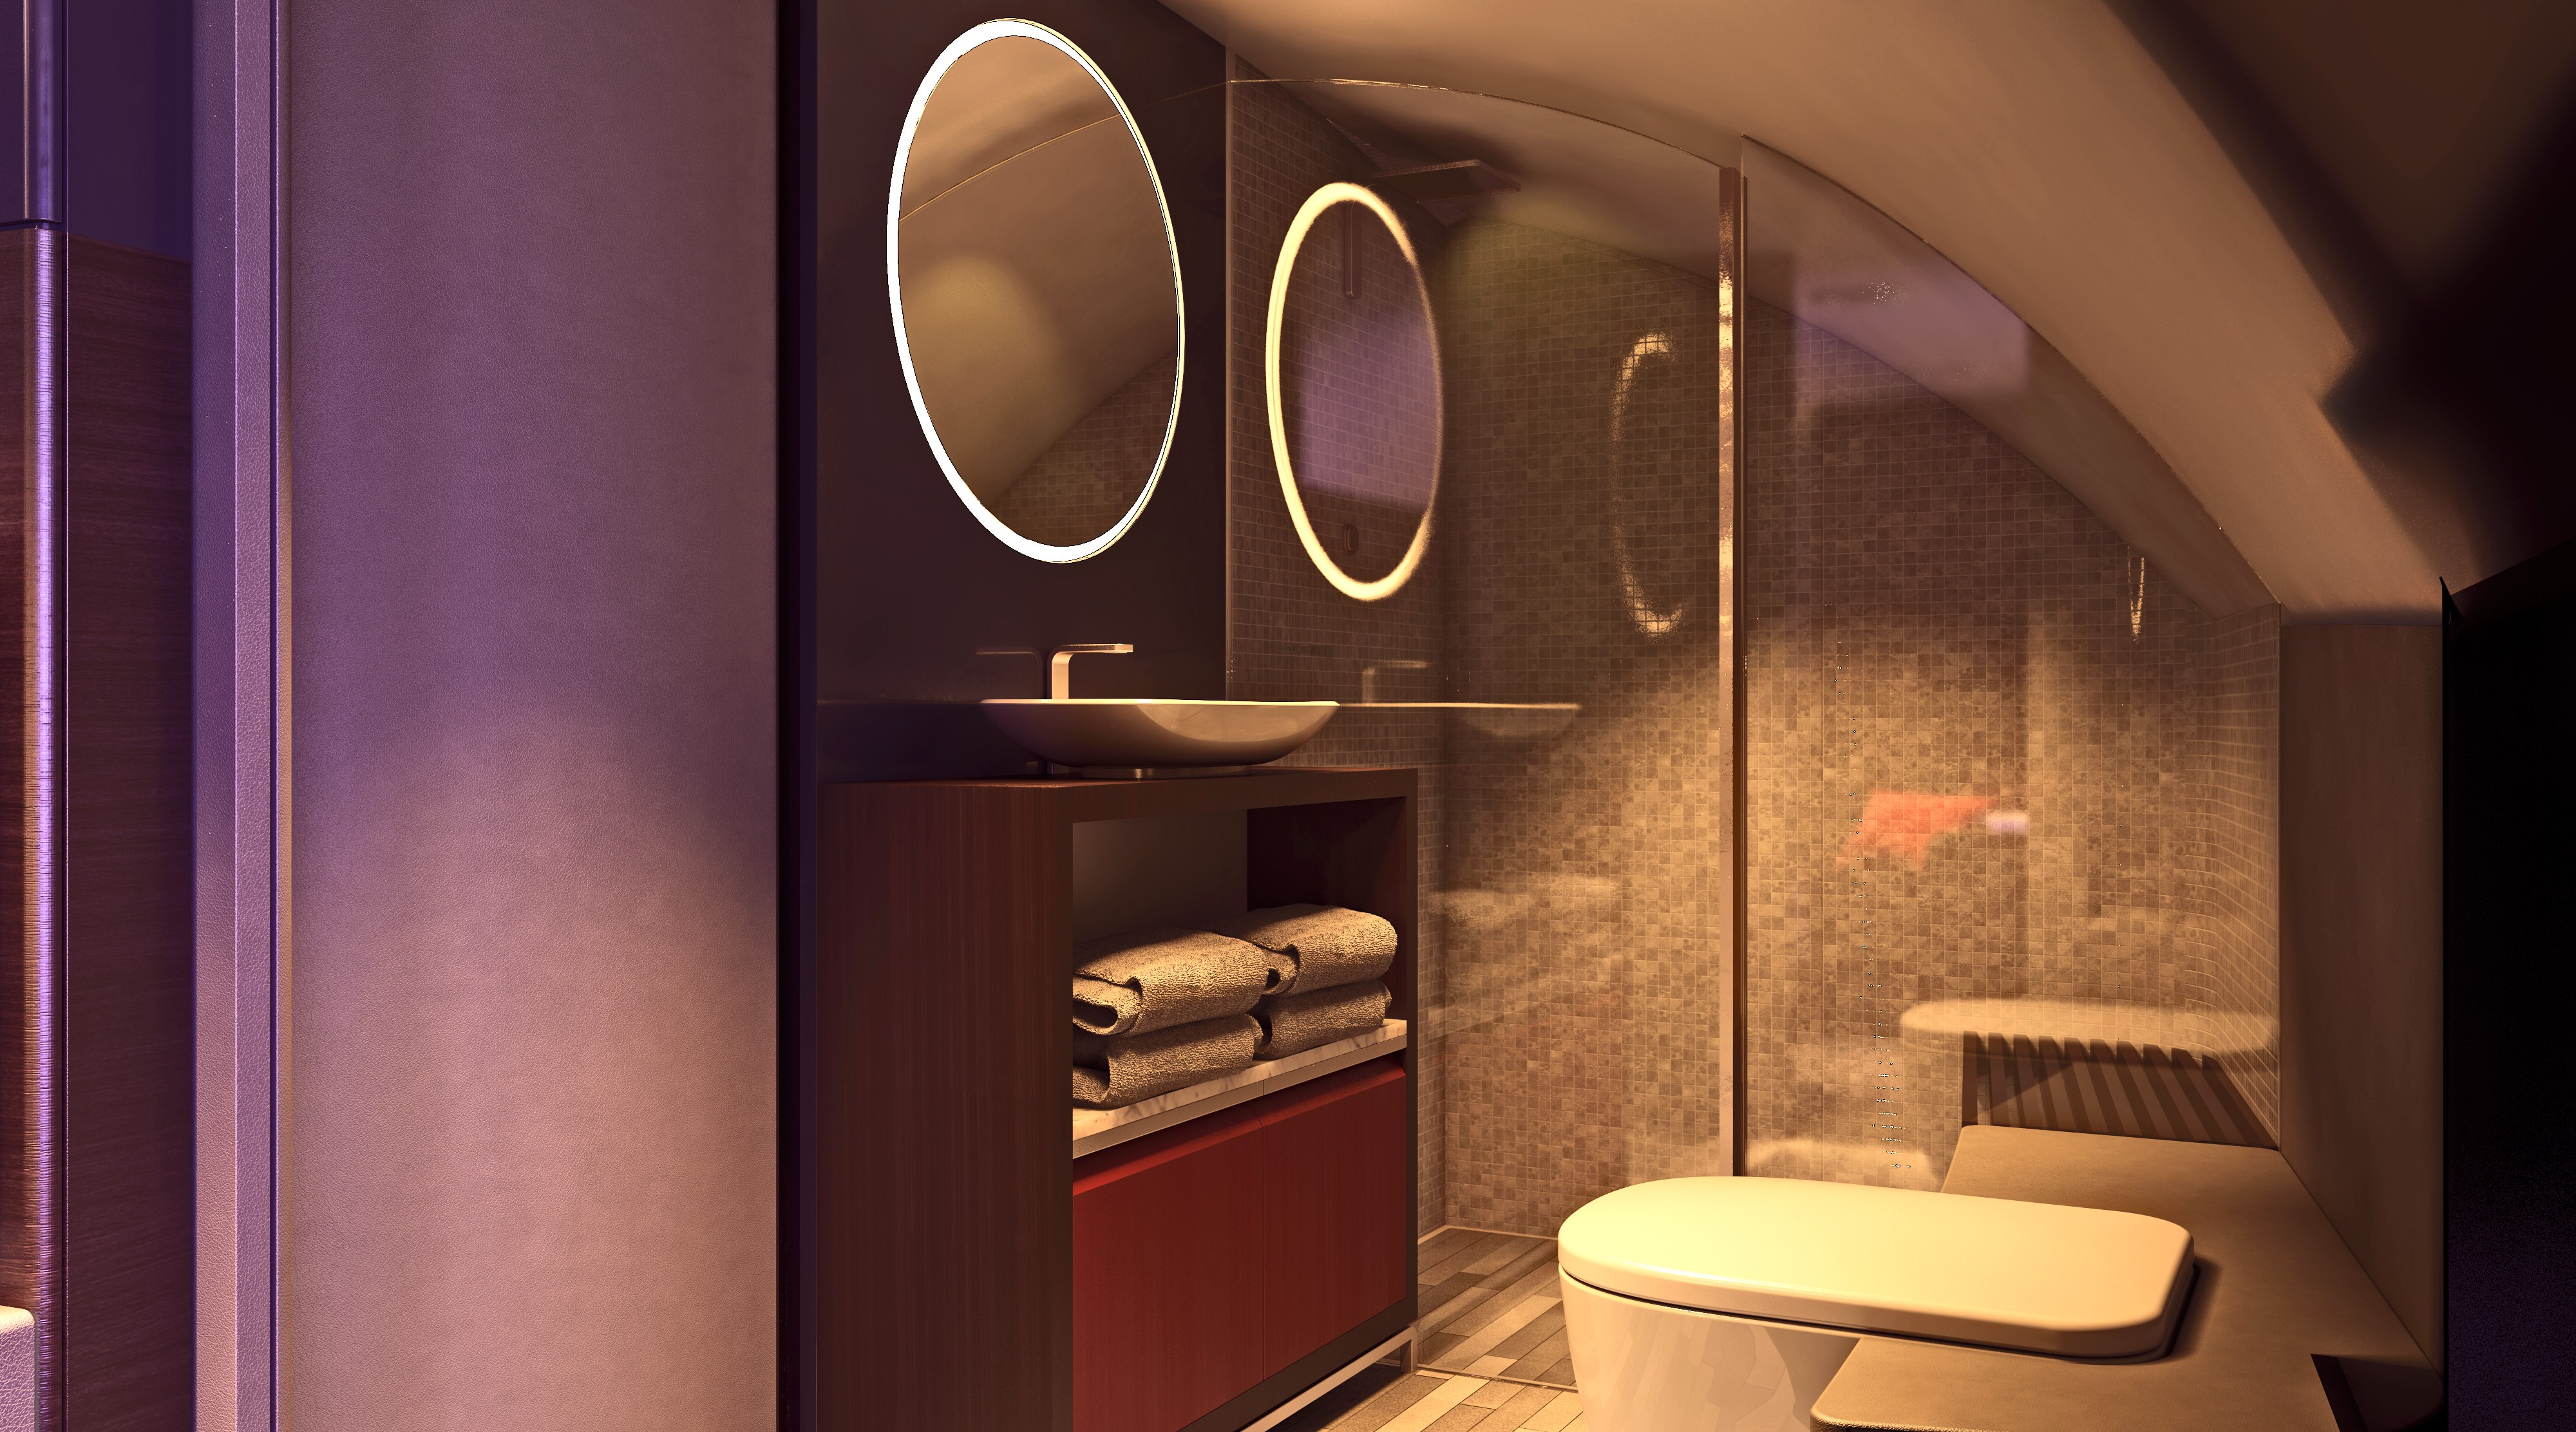 Singapore Airlines First Class Suite Bathroom